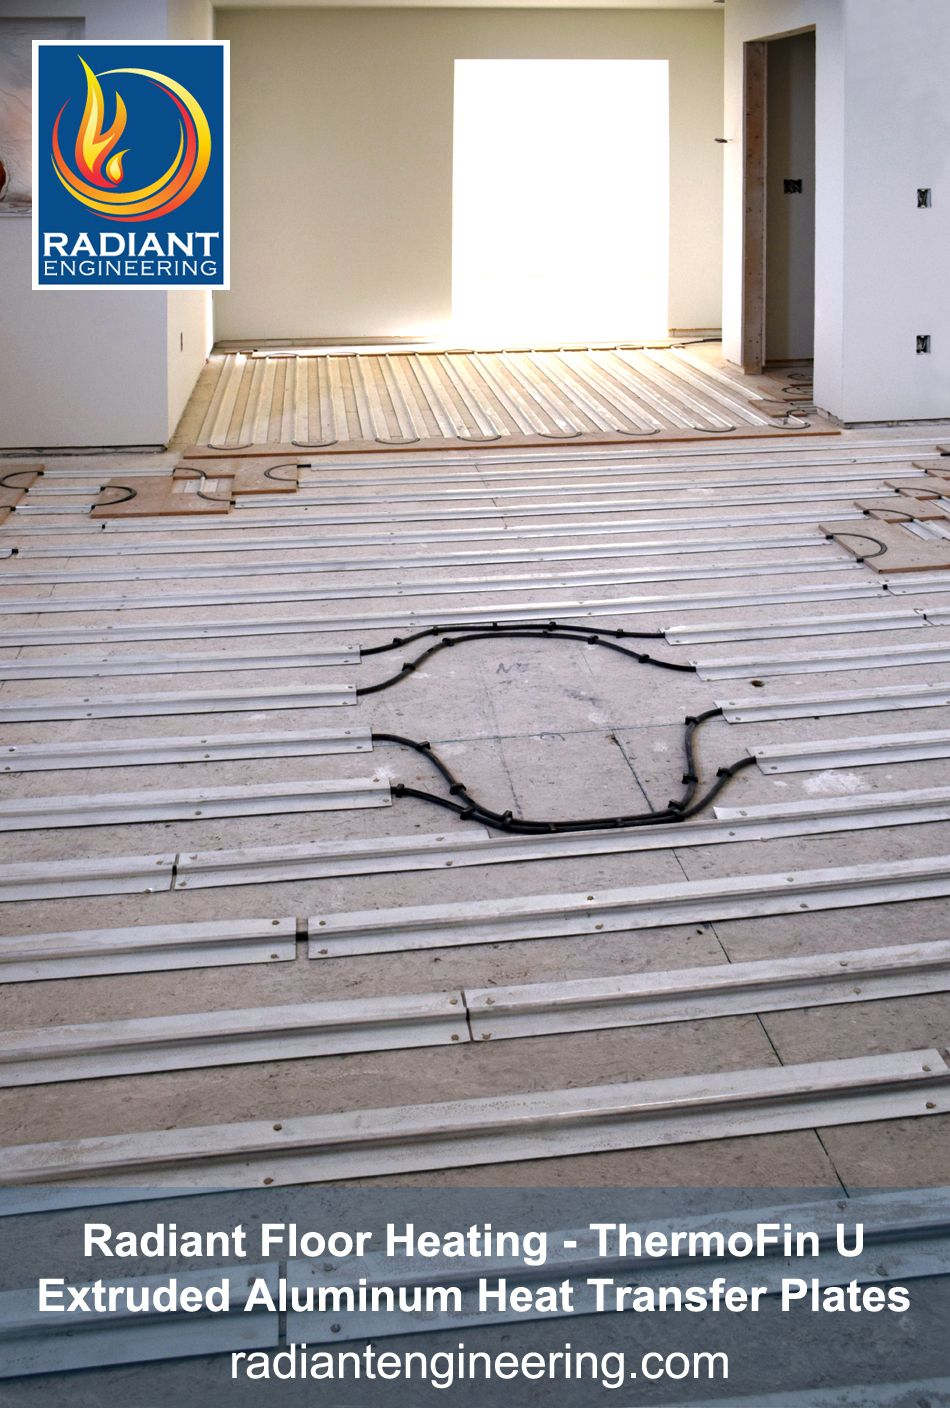 Thermofin Extruded Aluminum Heat Transfer Plates In This Photo Are Installed A Kitchen That Will Have Cook Top Island